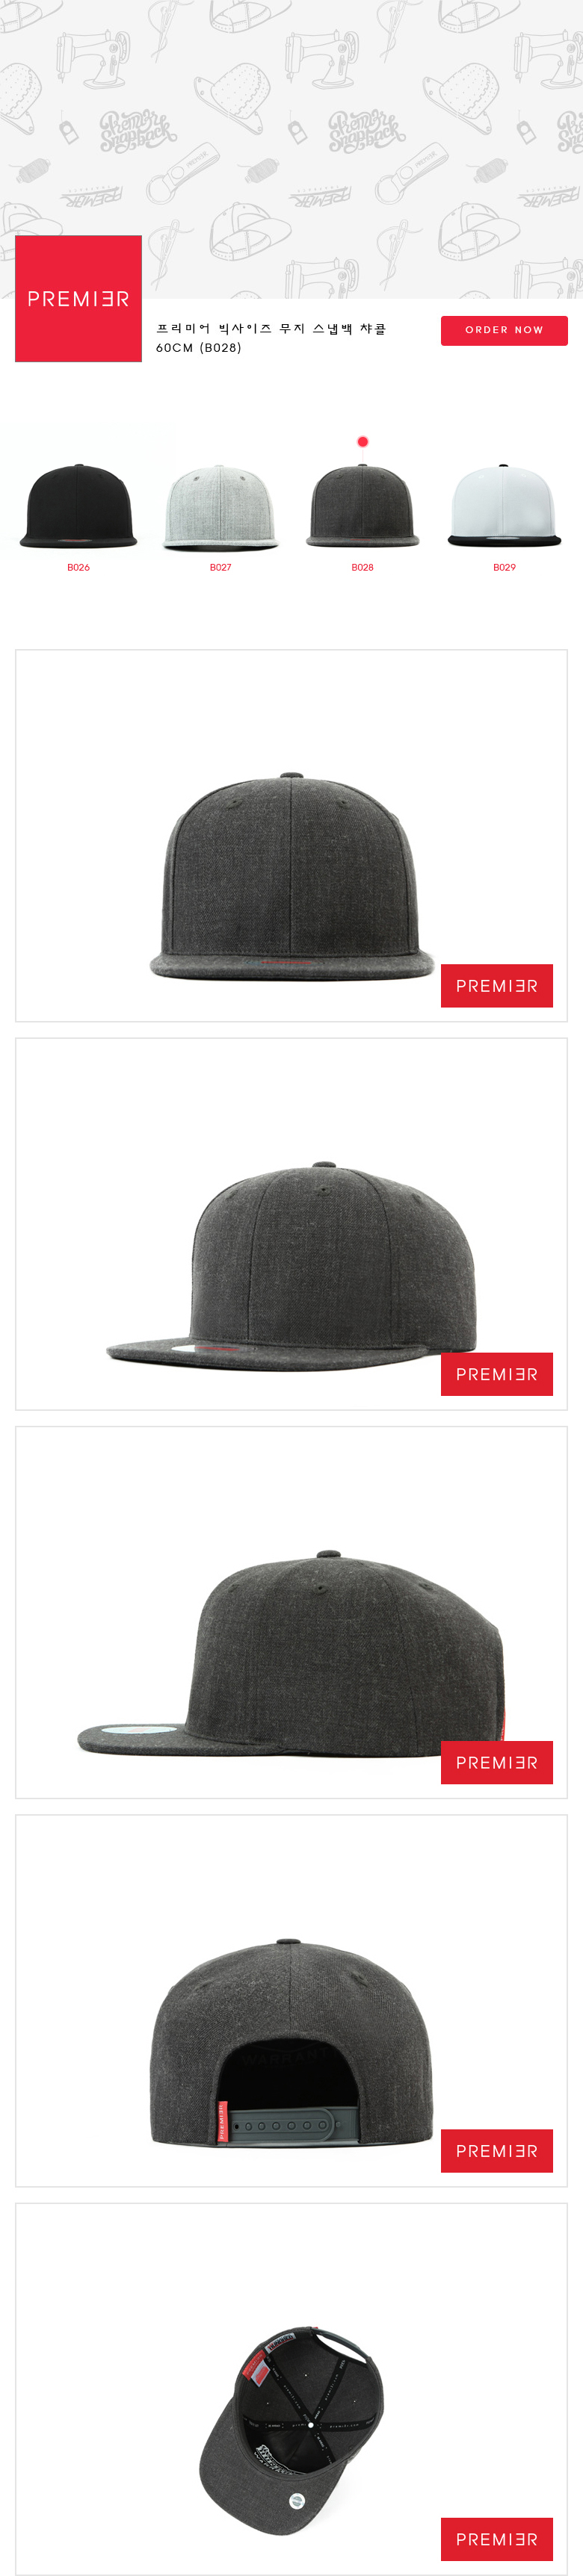 [ PREMIER ] [Premier] BIG One Color Snapback Charcoal 60CM (B028)